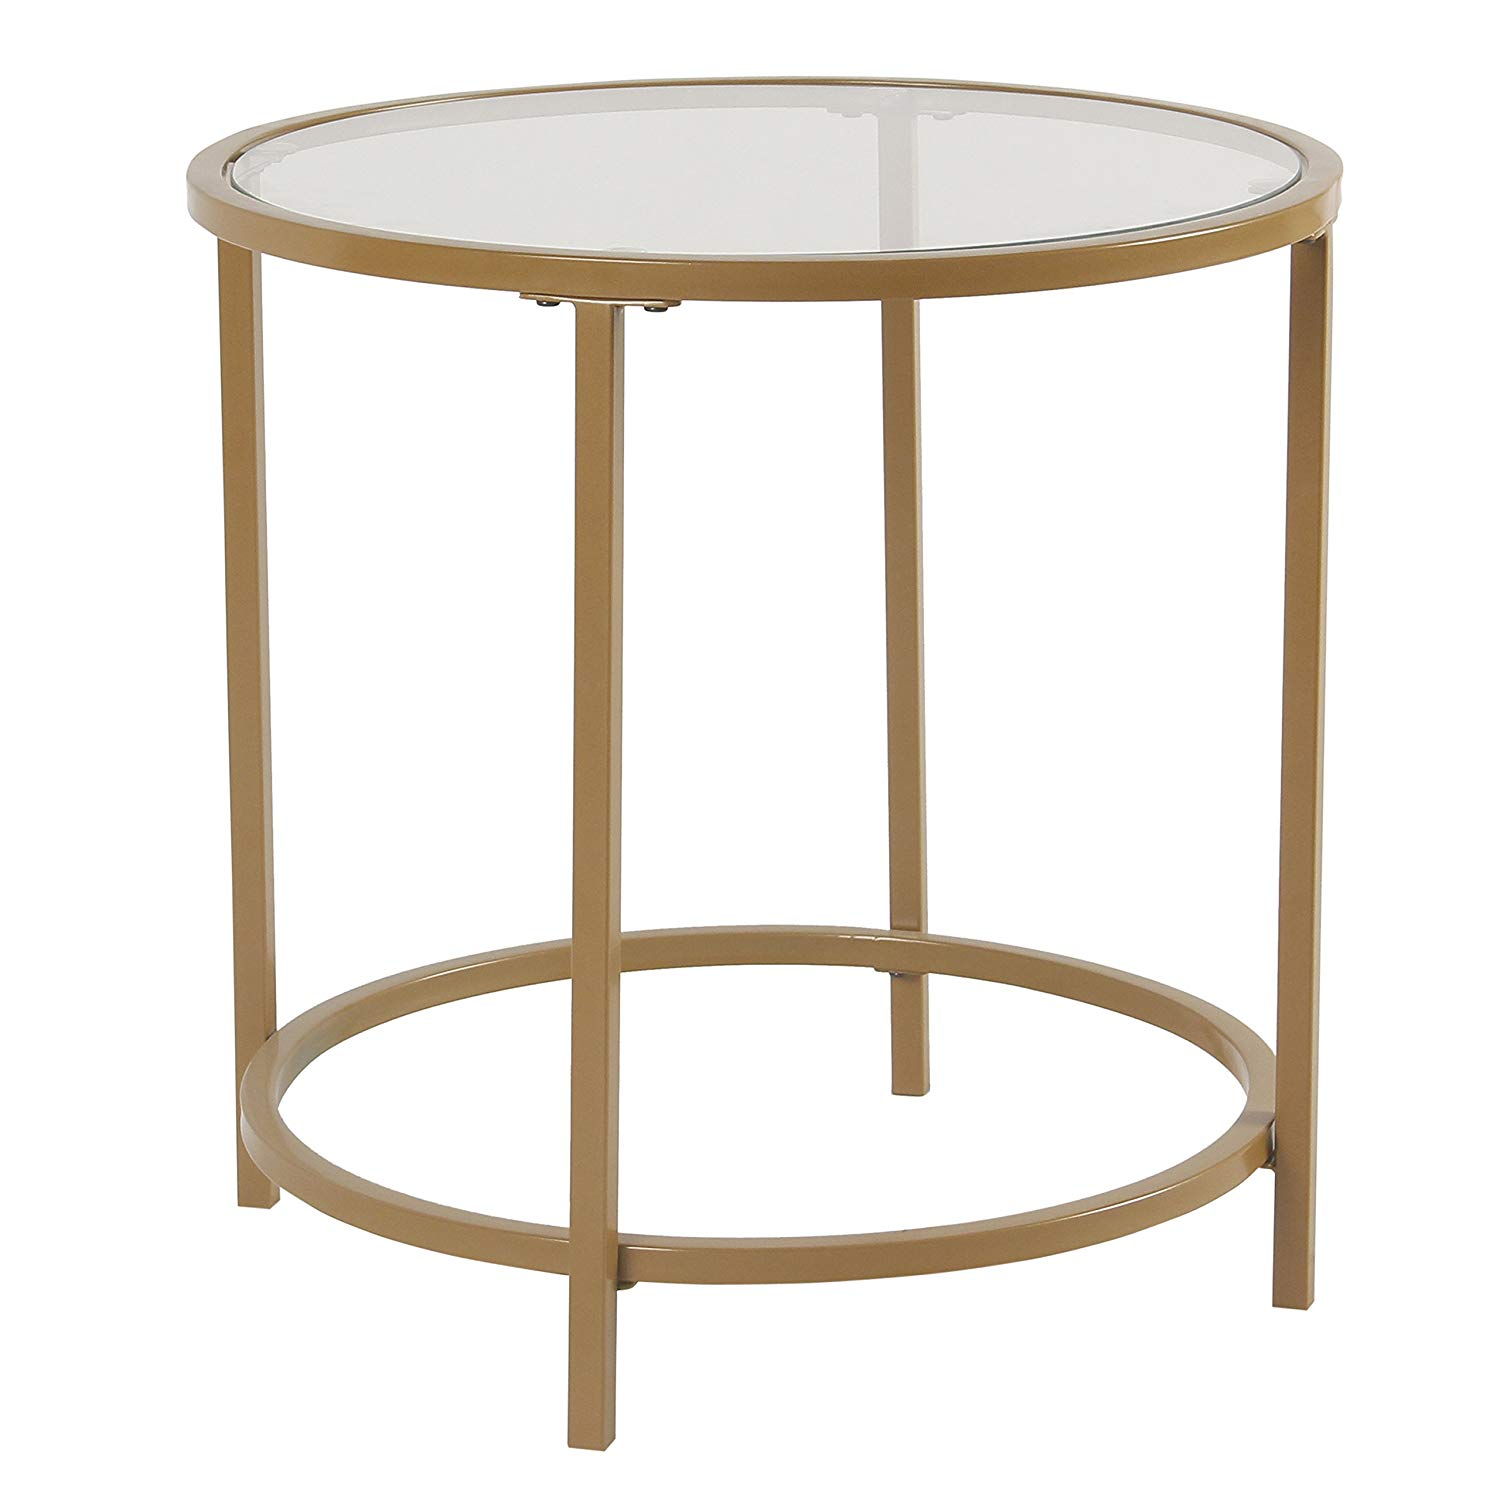 round glass accent table find metal get quotations spatial order top gold large silver wall clock tablette ideas dale tiffany pier dinnerware bunnings outdoor couch folding chairs